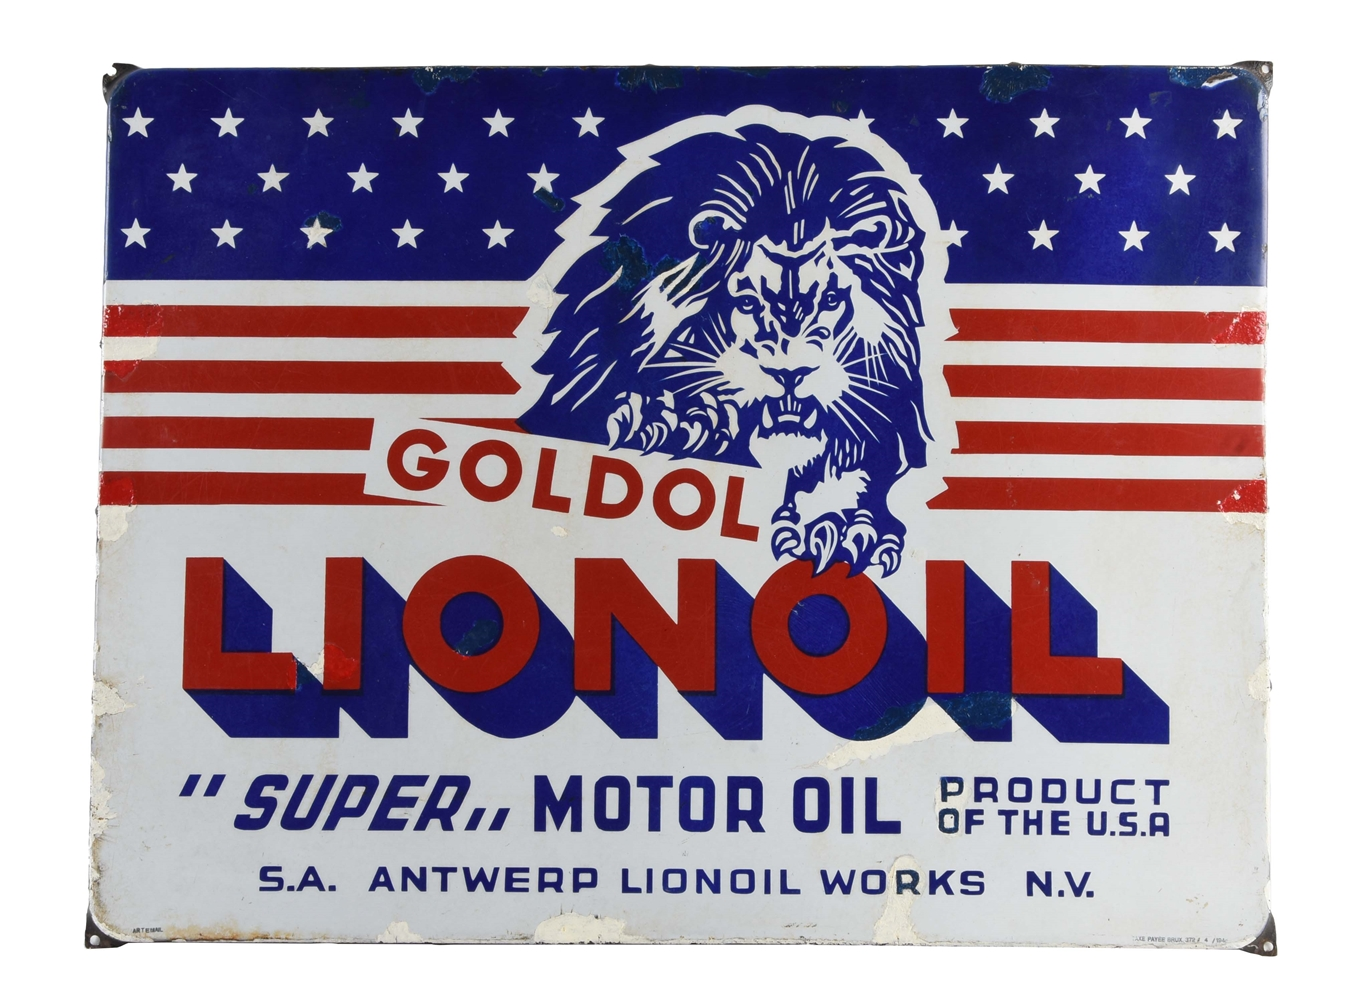 Goldol Lionoil Motor Oil Porcelain Sign With Lion Graphic.